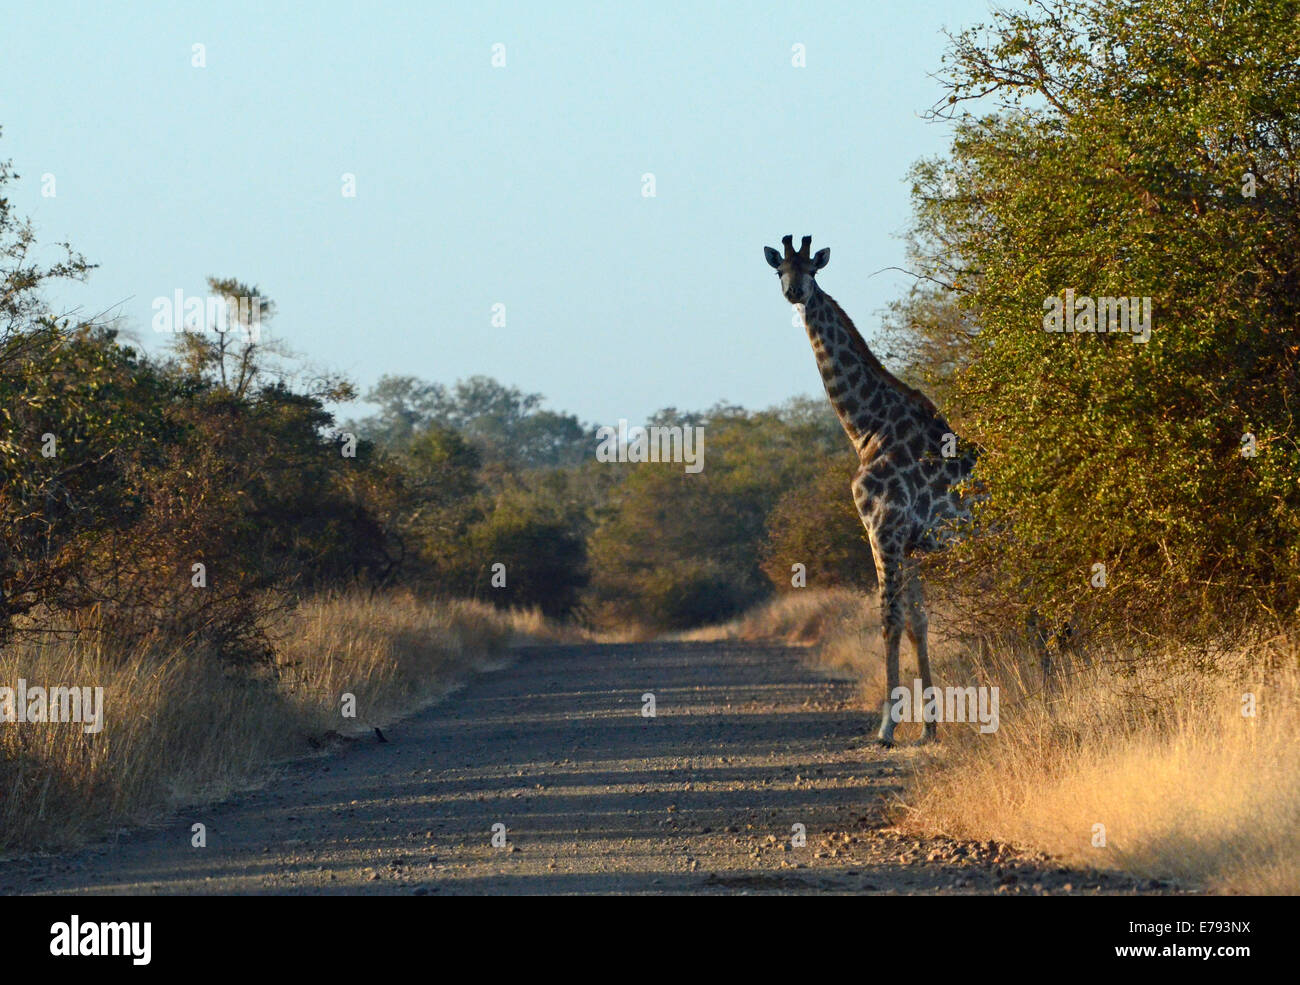 Giraffe on edge of dirt road, silhouetted against blue sky. Early morning shot. Kruger National park, winter scene. - Stock Image